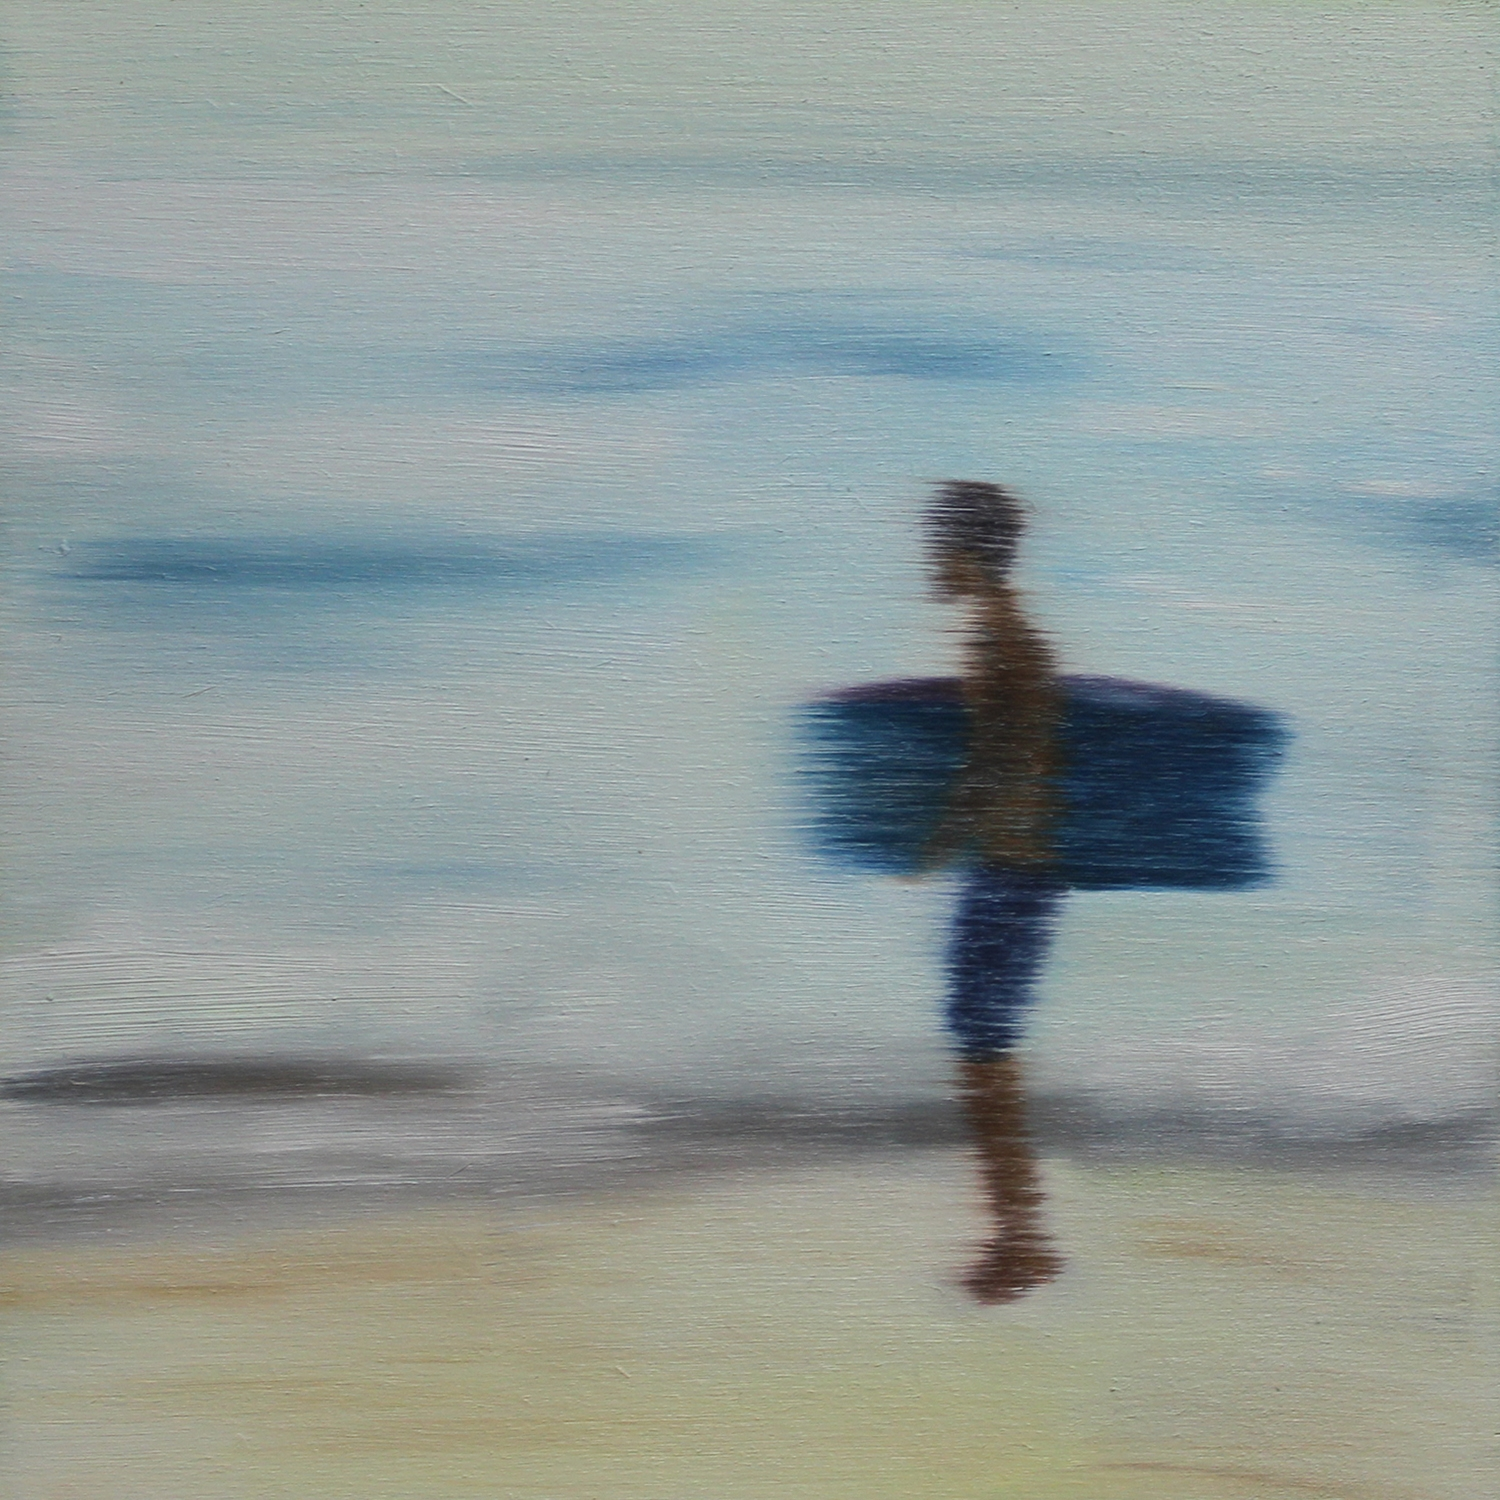 Catching Waves #1 by Shannon  Dickie